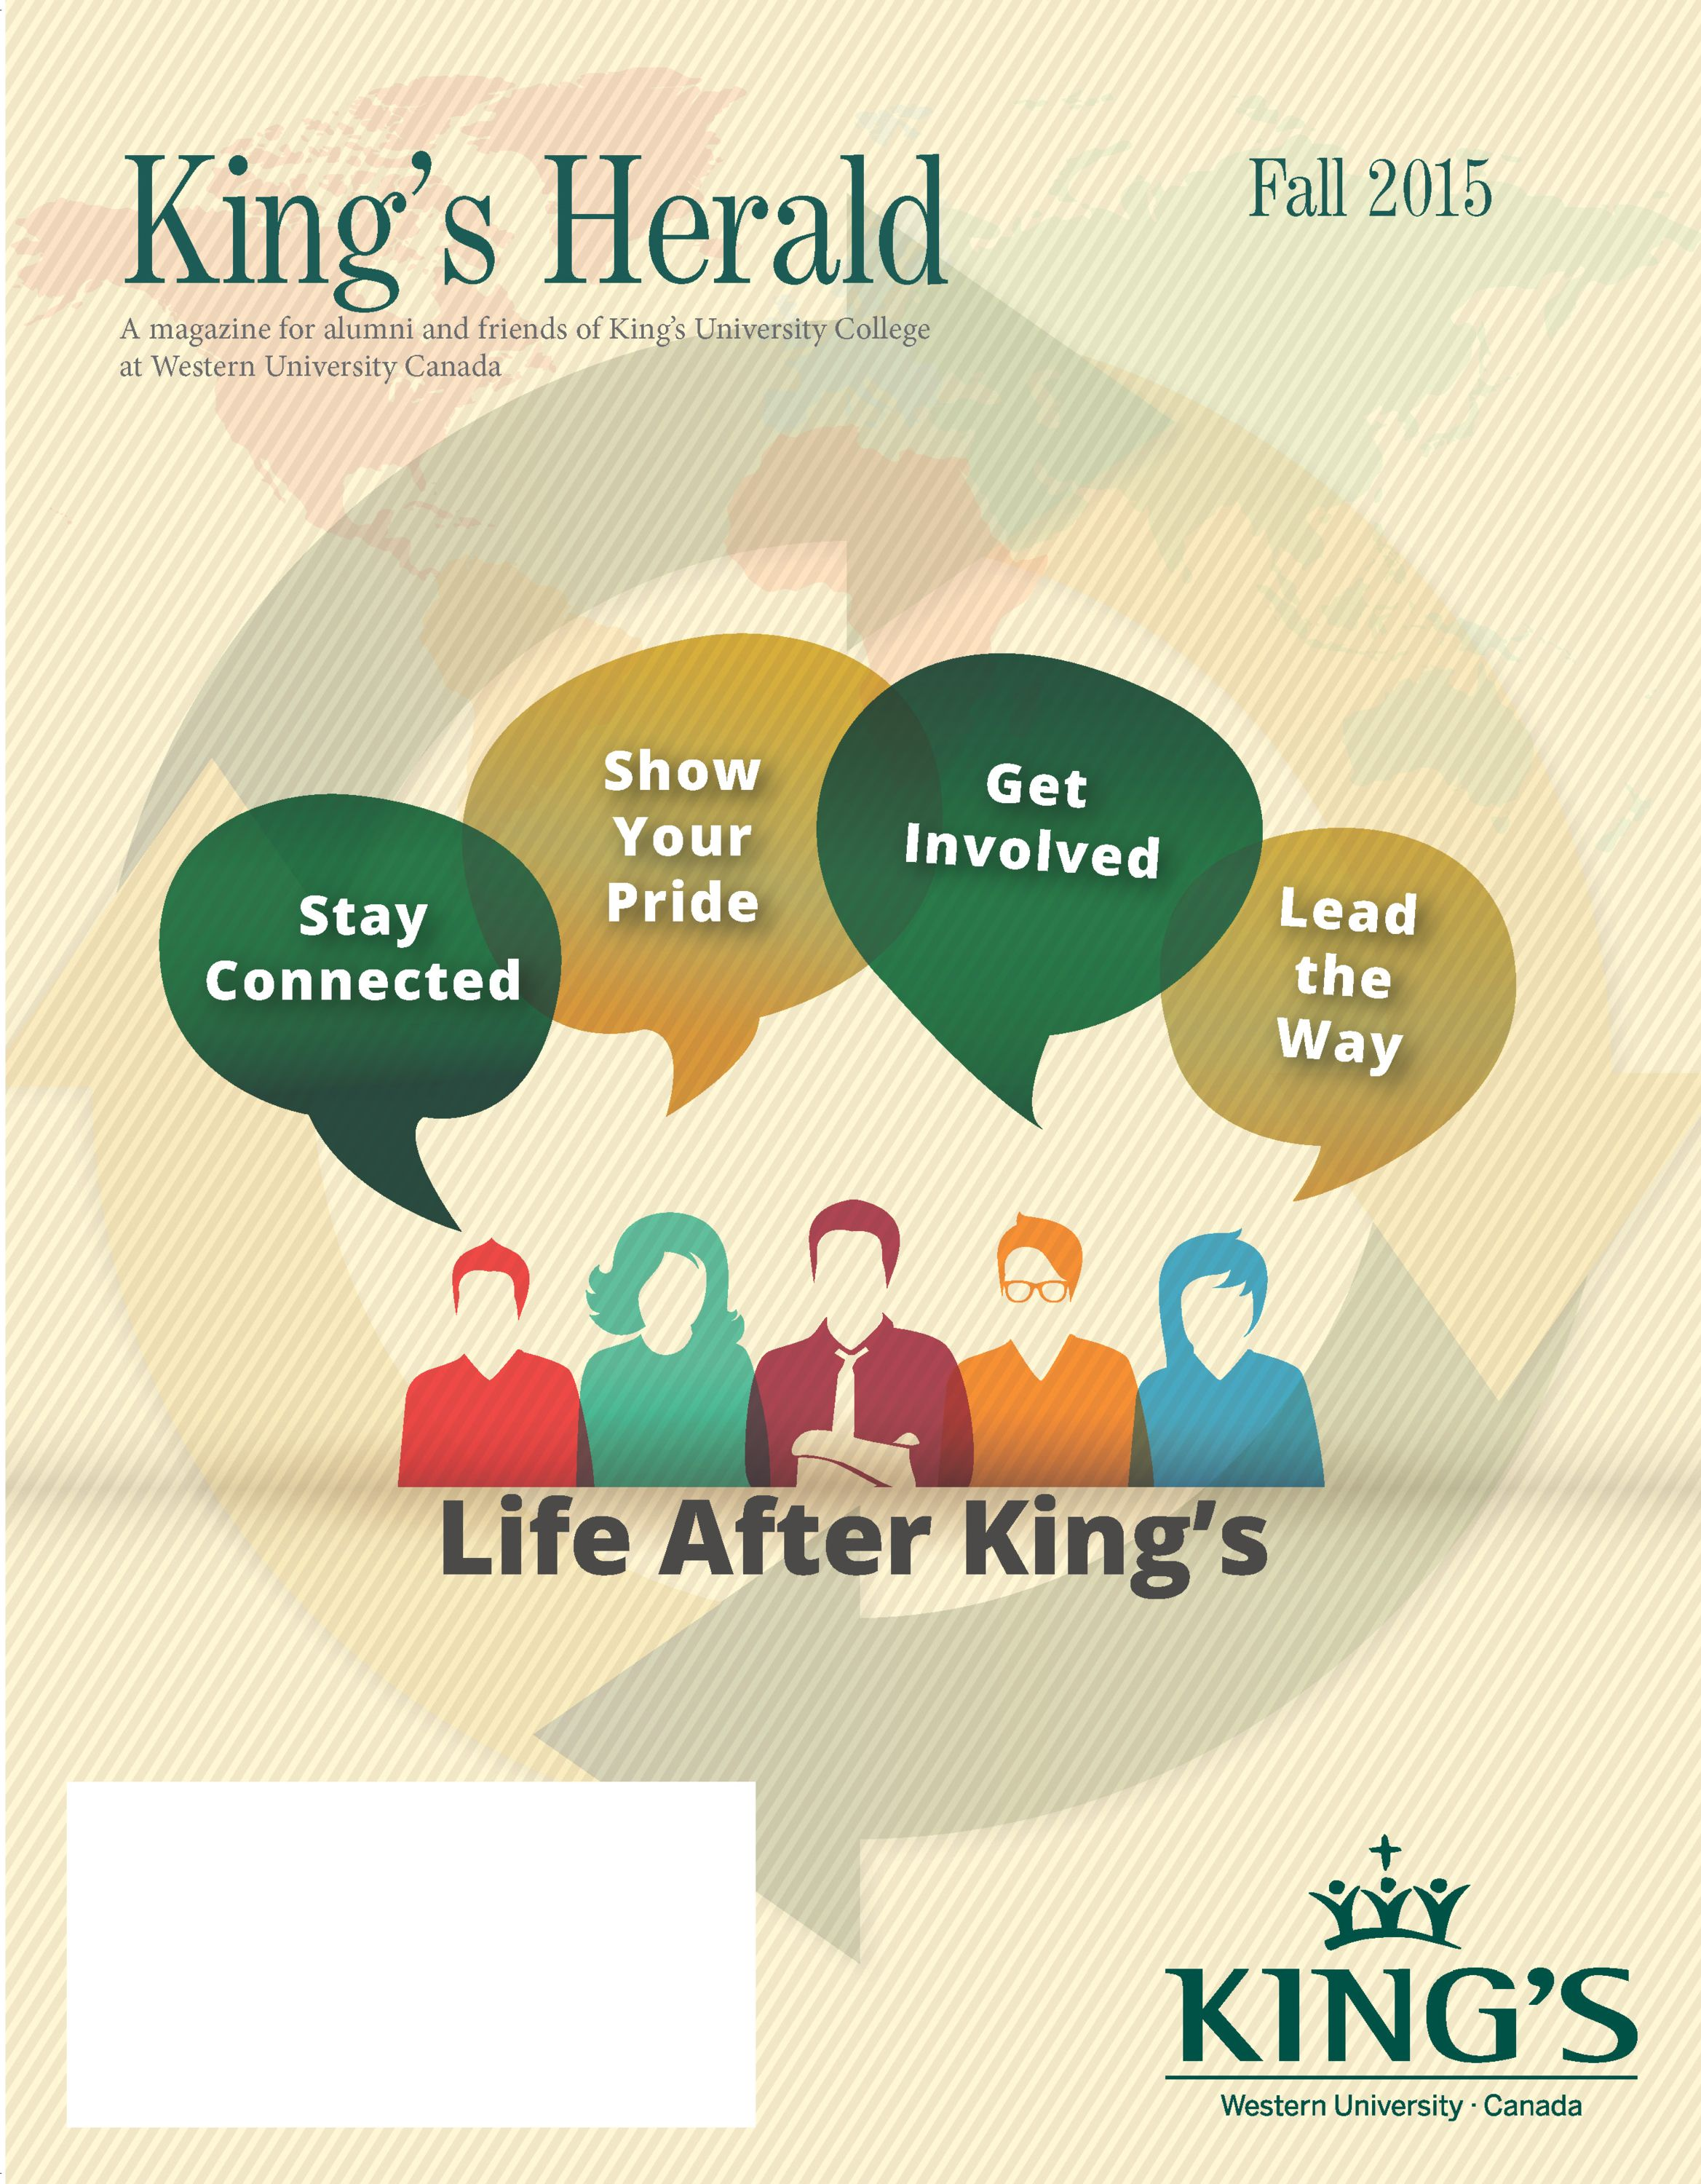 (image: King's Herald Fall 2015)